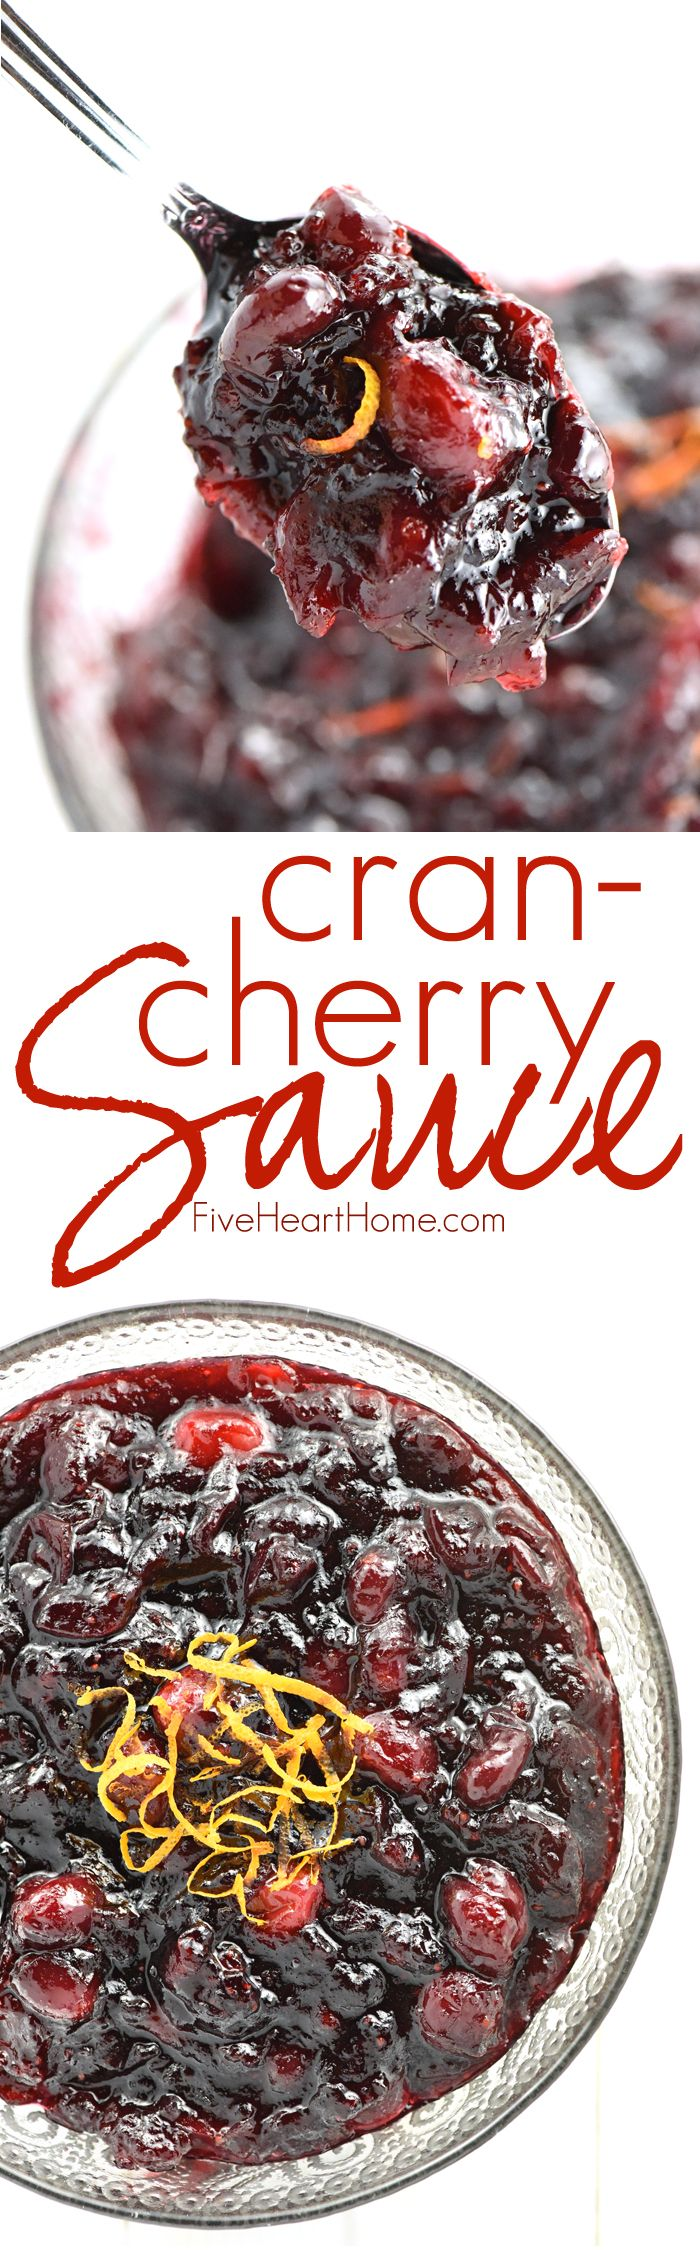 Cran-Cherry Sauce ~ sweetened with honey and brightened with citrus, this tasty twist on homemade cranberry sauce strikes a perfect balance between tart cranberries and luscious cherry preserves, making it the perfect addition to your Thanksgiving table! | FiveHeartHome.com